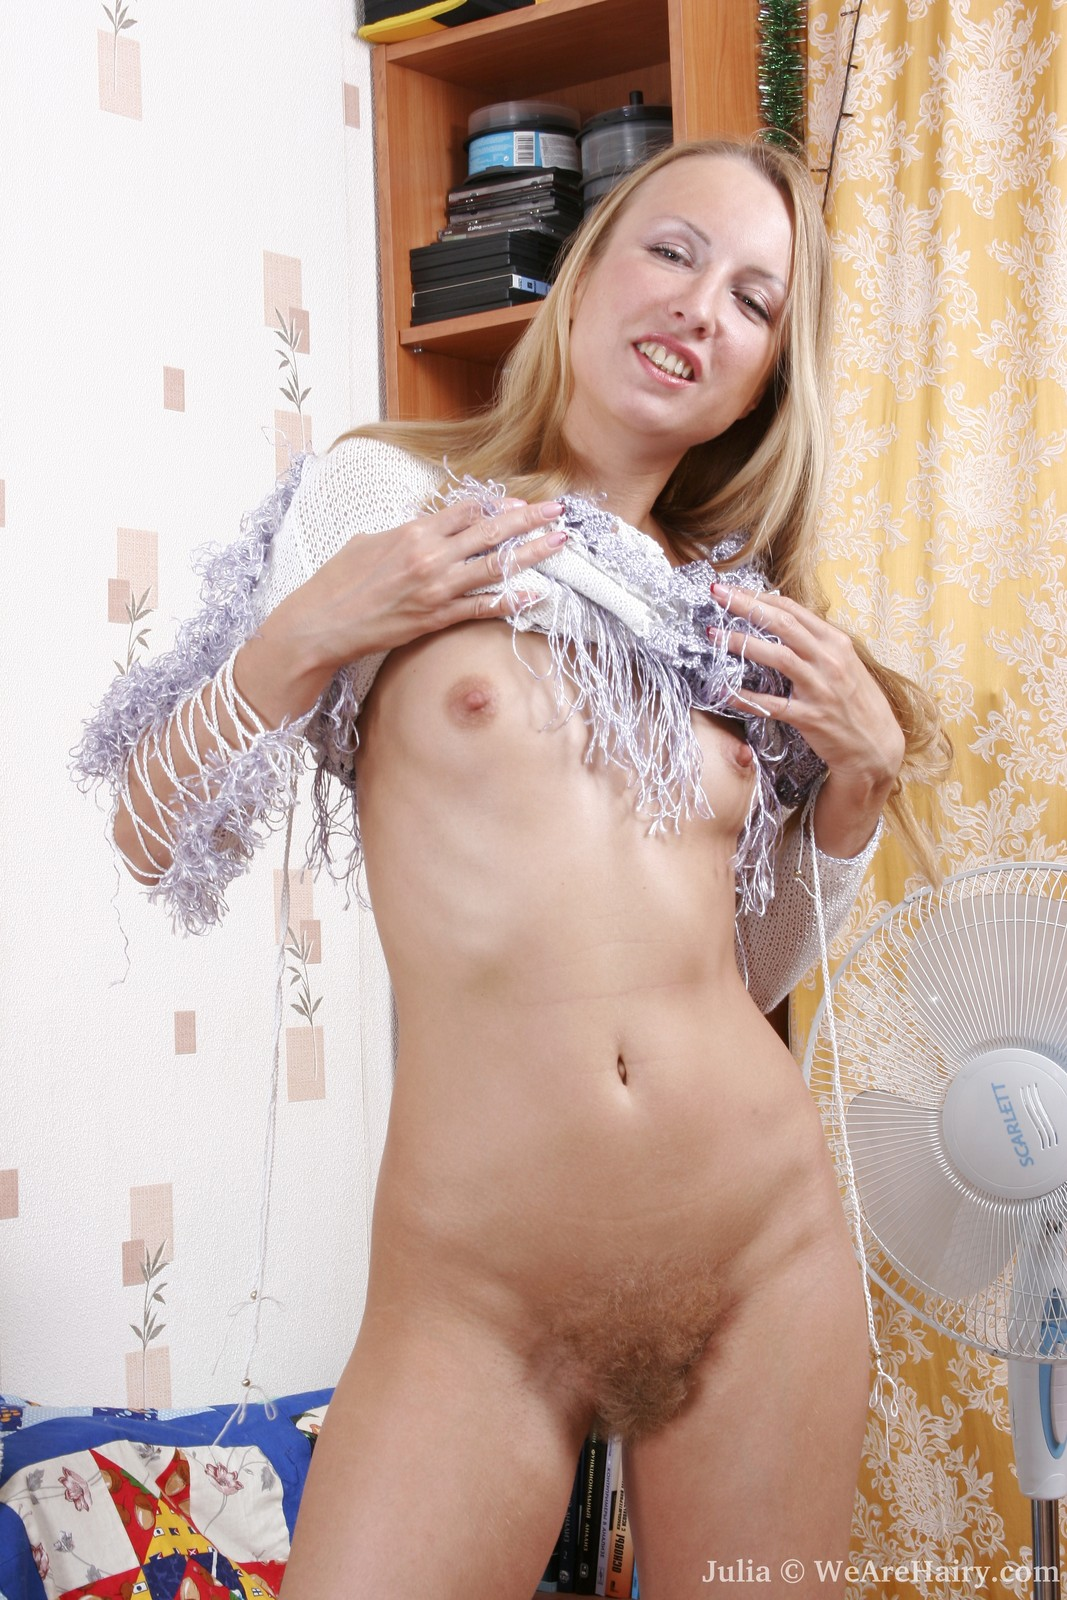 For virgin blondes hairy bush apologise